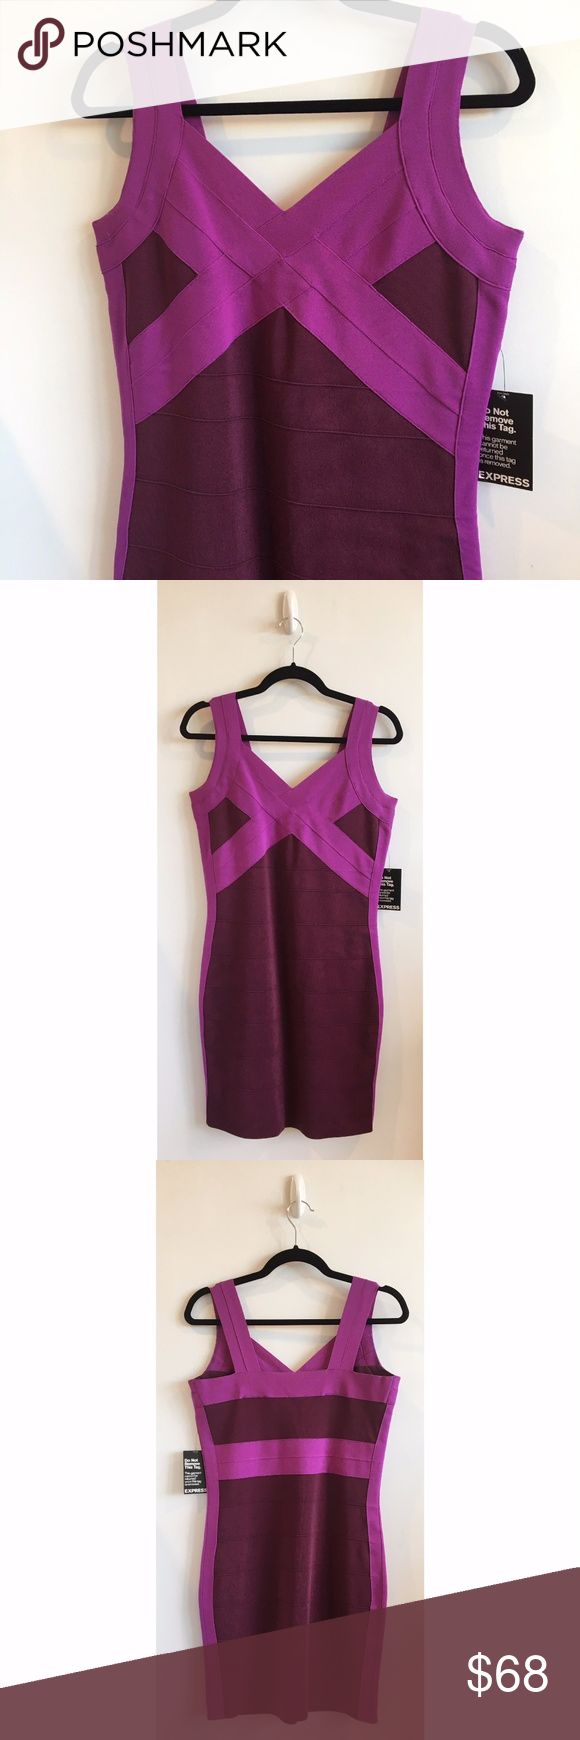 """Express NWT Maroon & Purple Bandage Dress - Maroon and purple bandage dress - Super stretchy and supportive bandage construction - NWT never worn, in perfect condition - Length from shoulder: 36"""" - Chest: 34"""" Express Dresses Mini"""